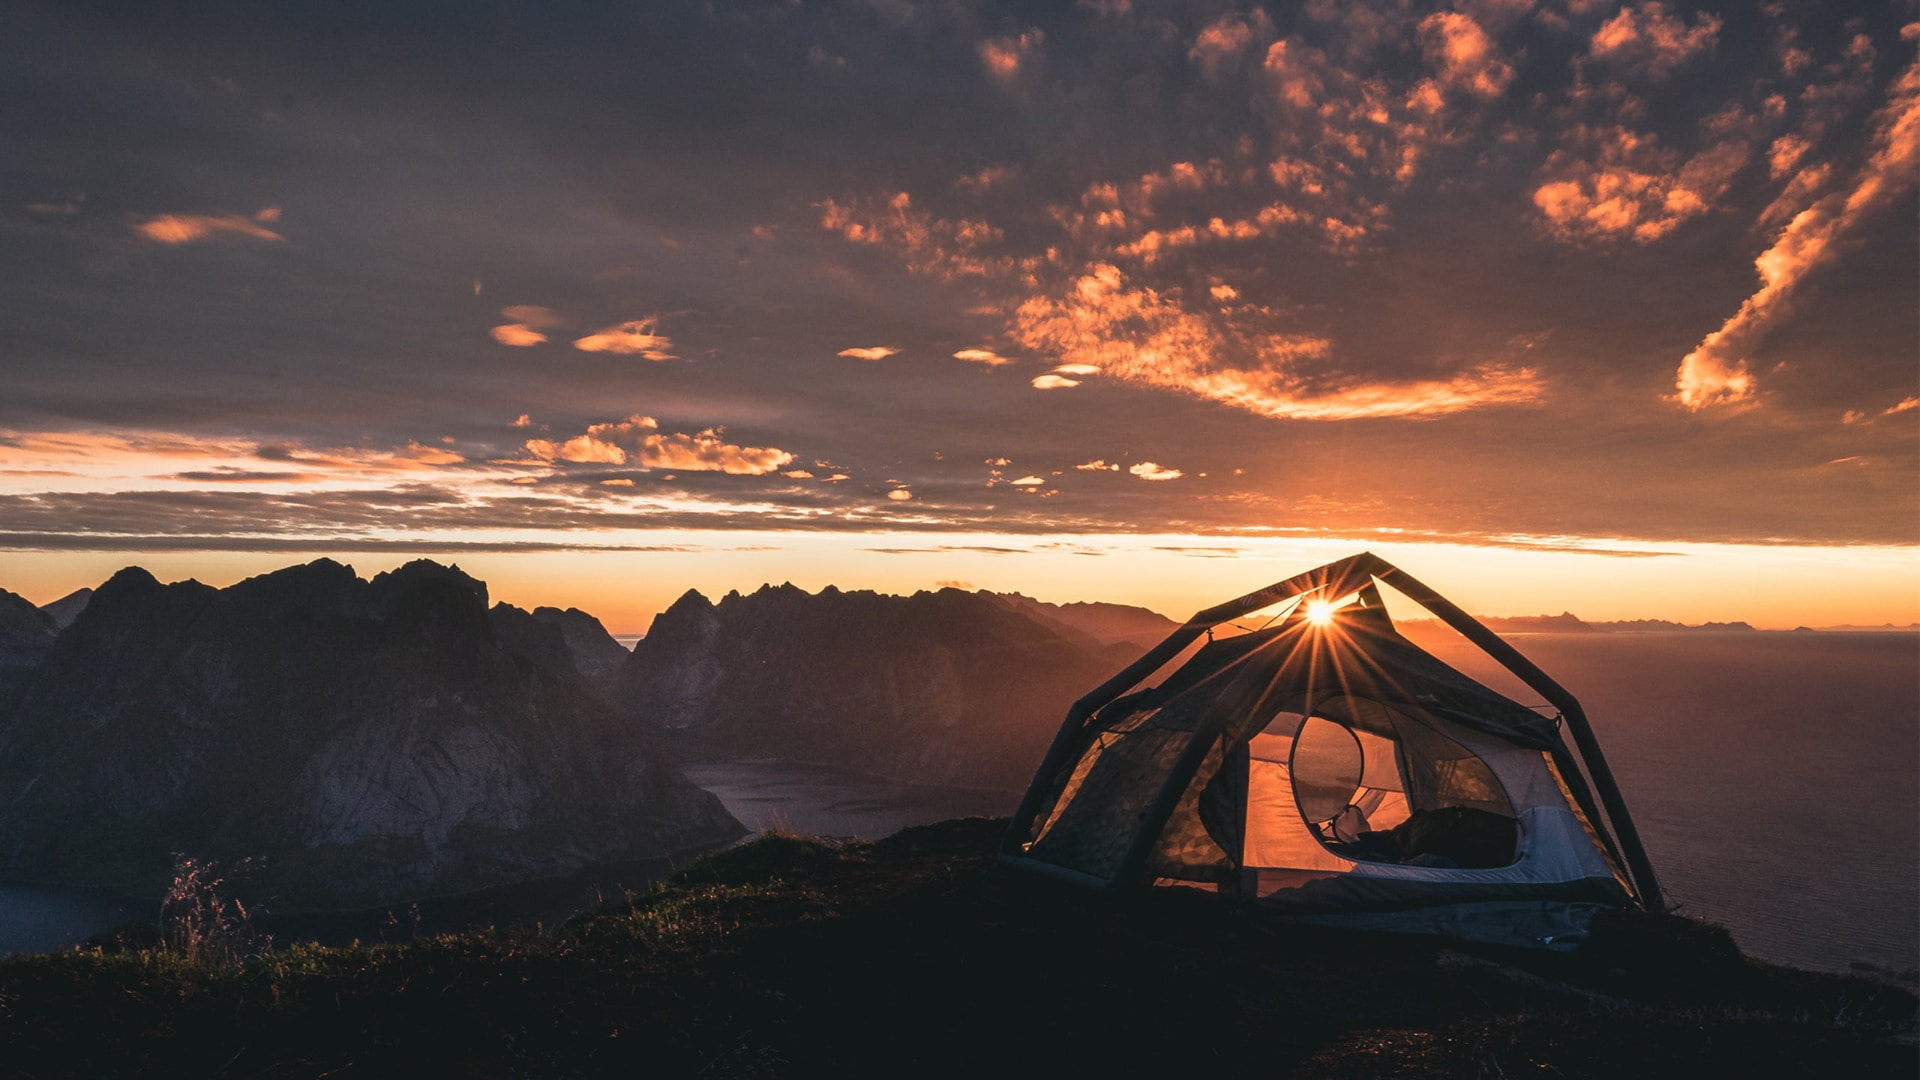 camping background images